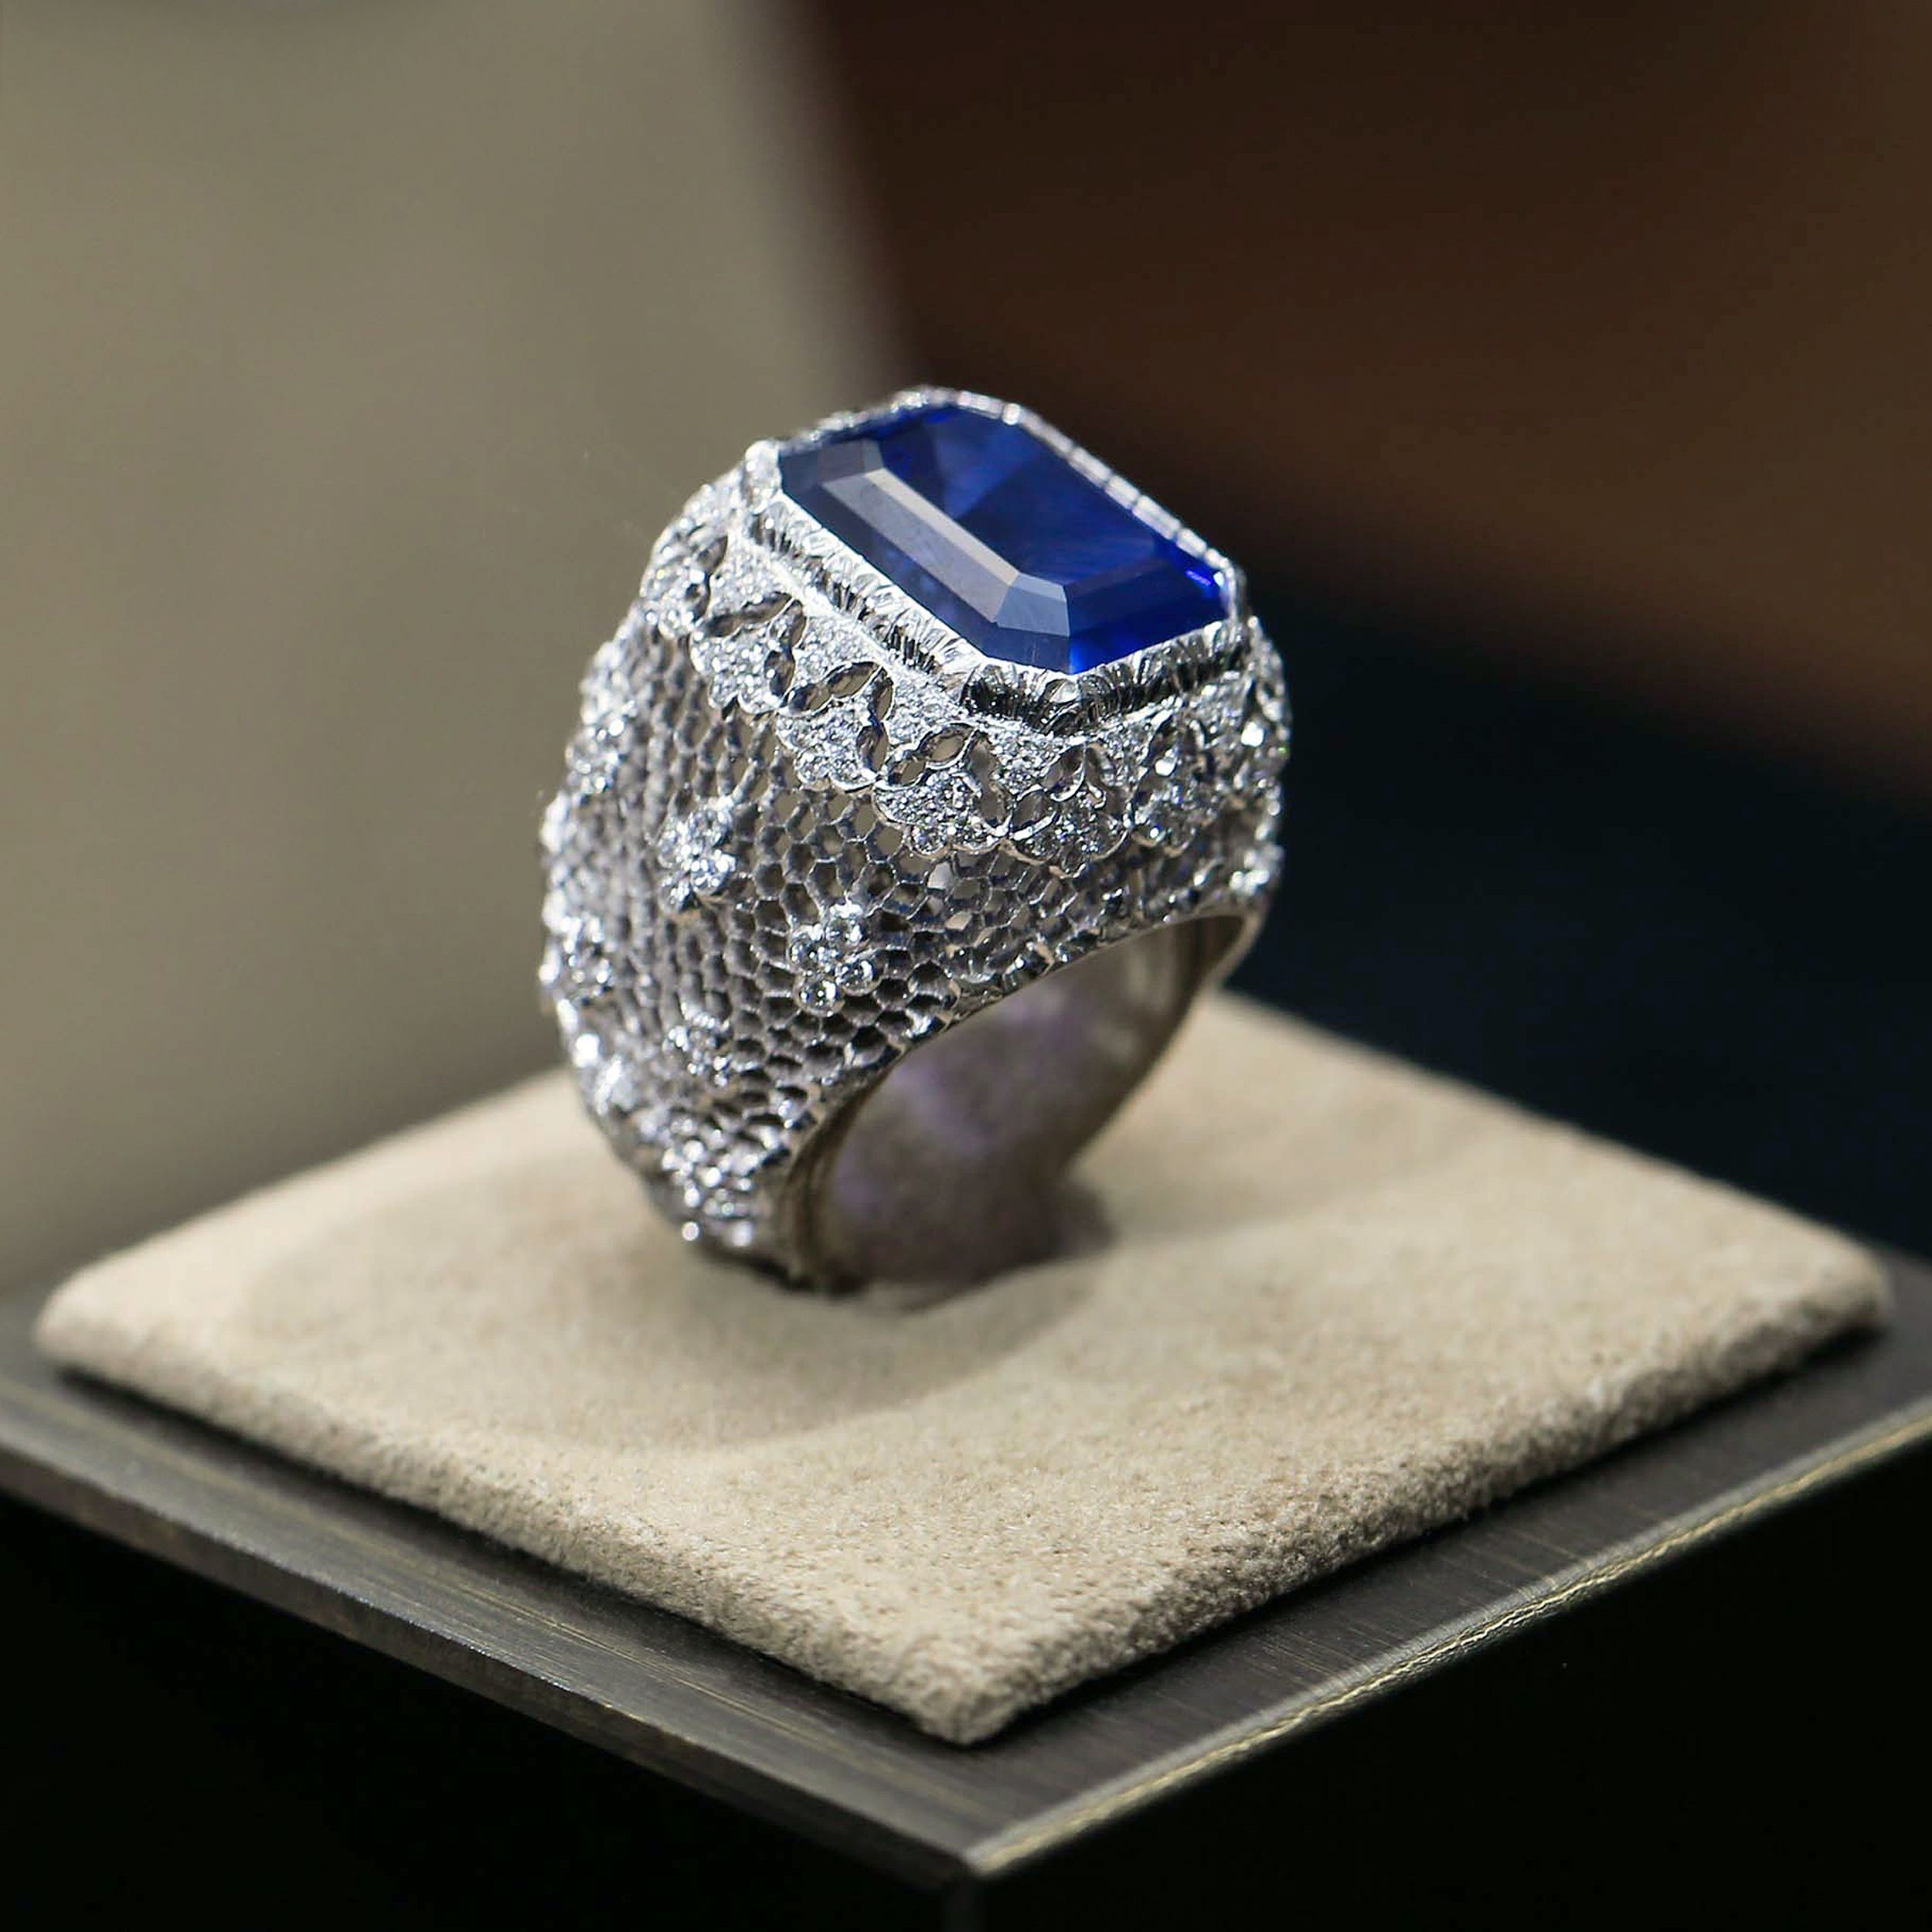 #Buccellati Cocktail Rings are lavish, opulent and stunning. Explore and be enchanted by every detail of this fearless white gold honeycomb piece with a centrale sapphire and diamonds.